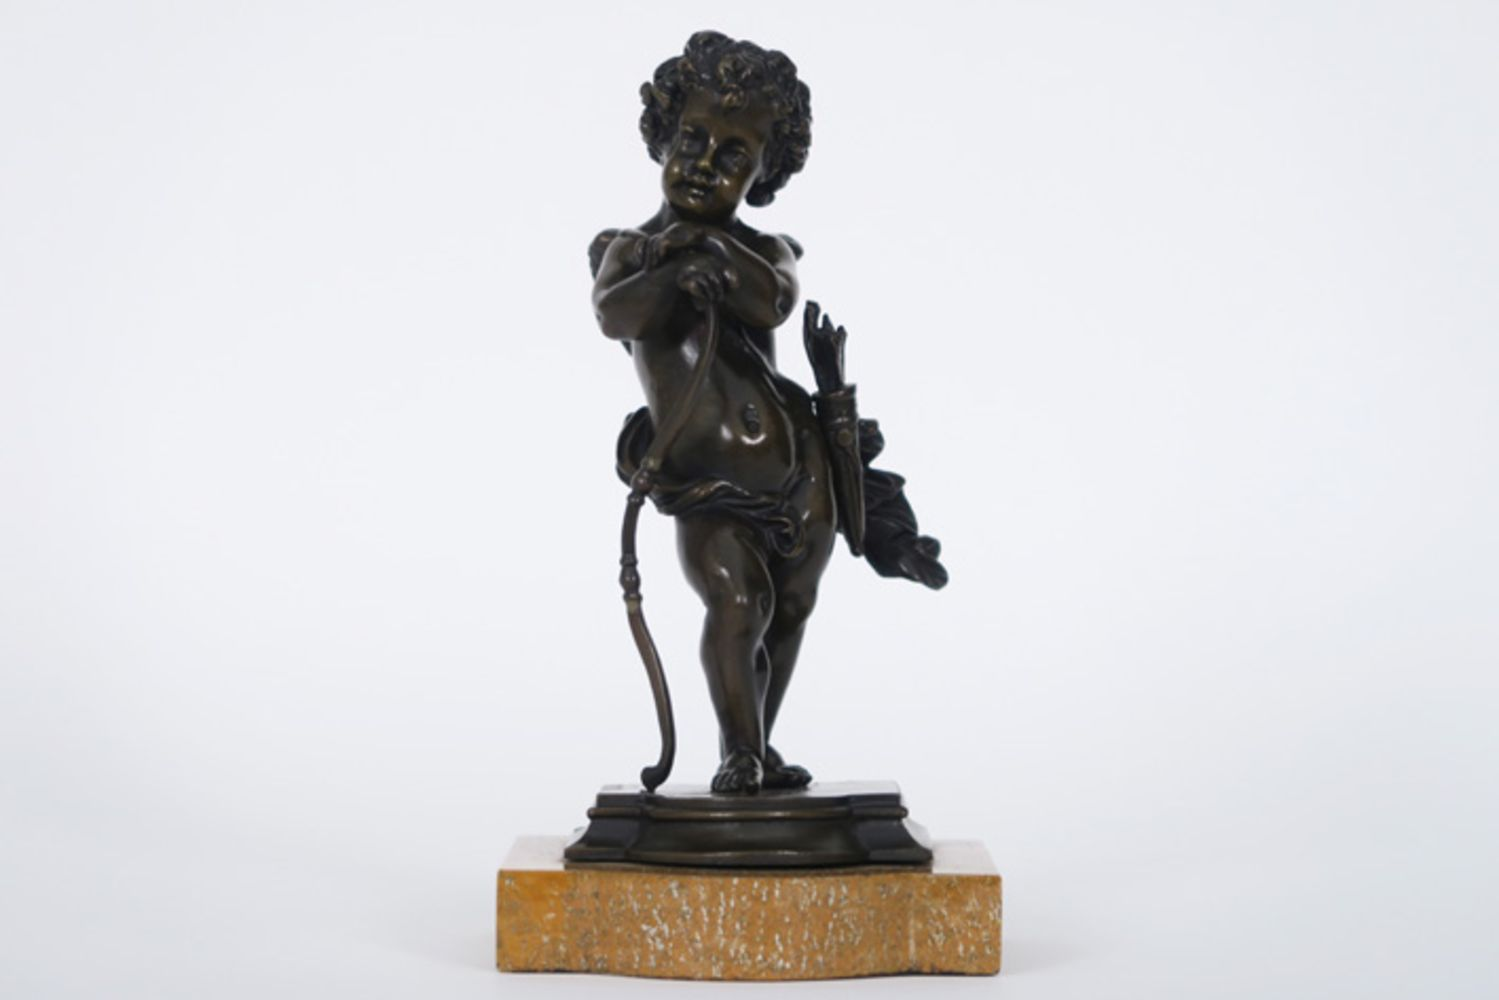 Castle content : art and antiques (16th - 19th century) (Gent)